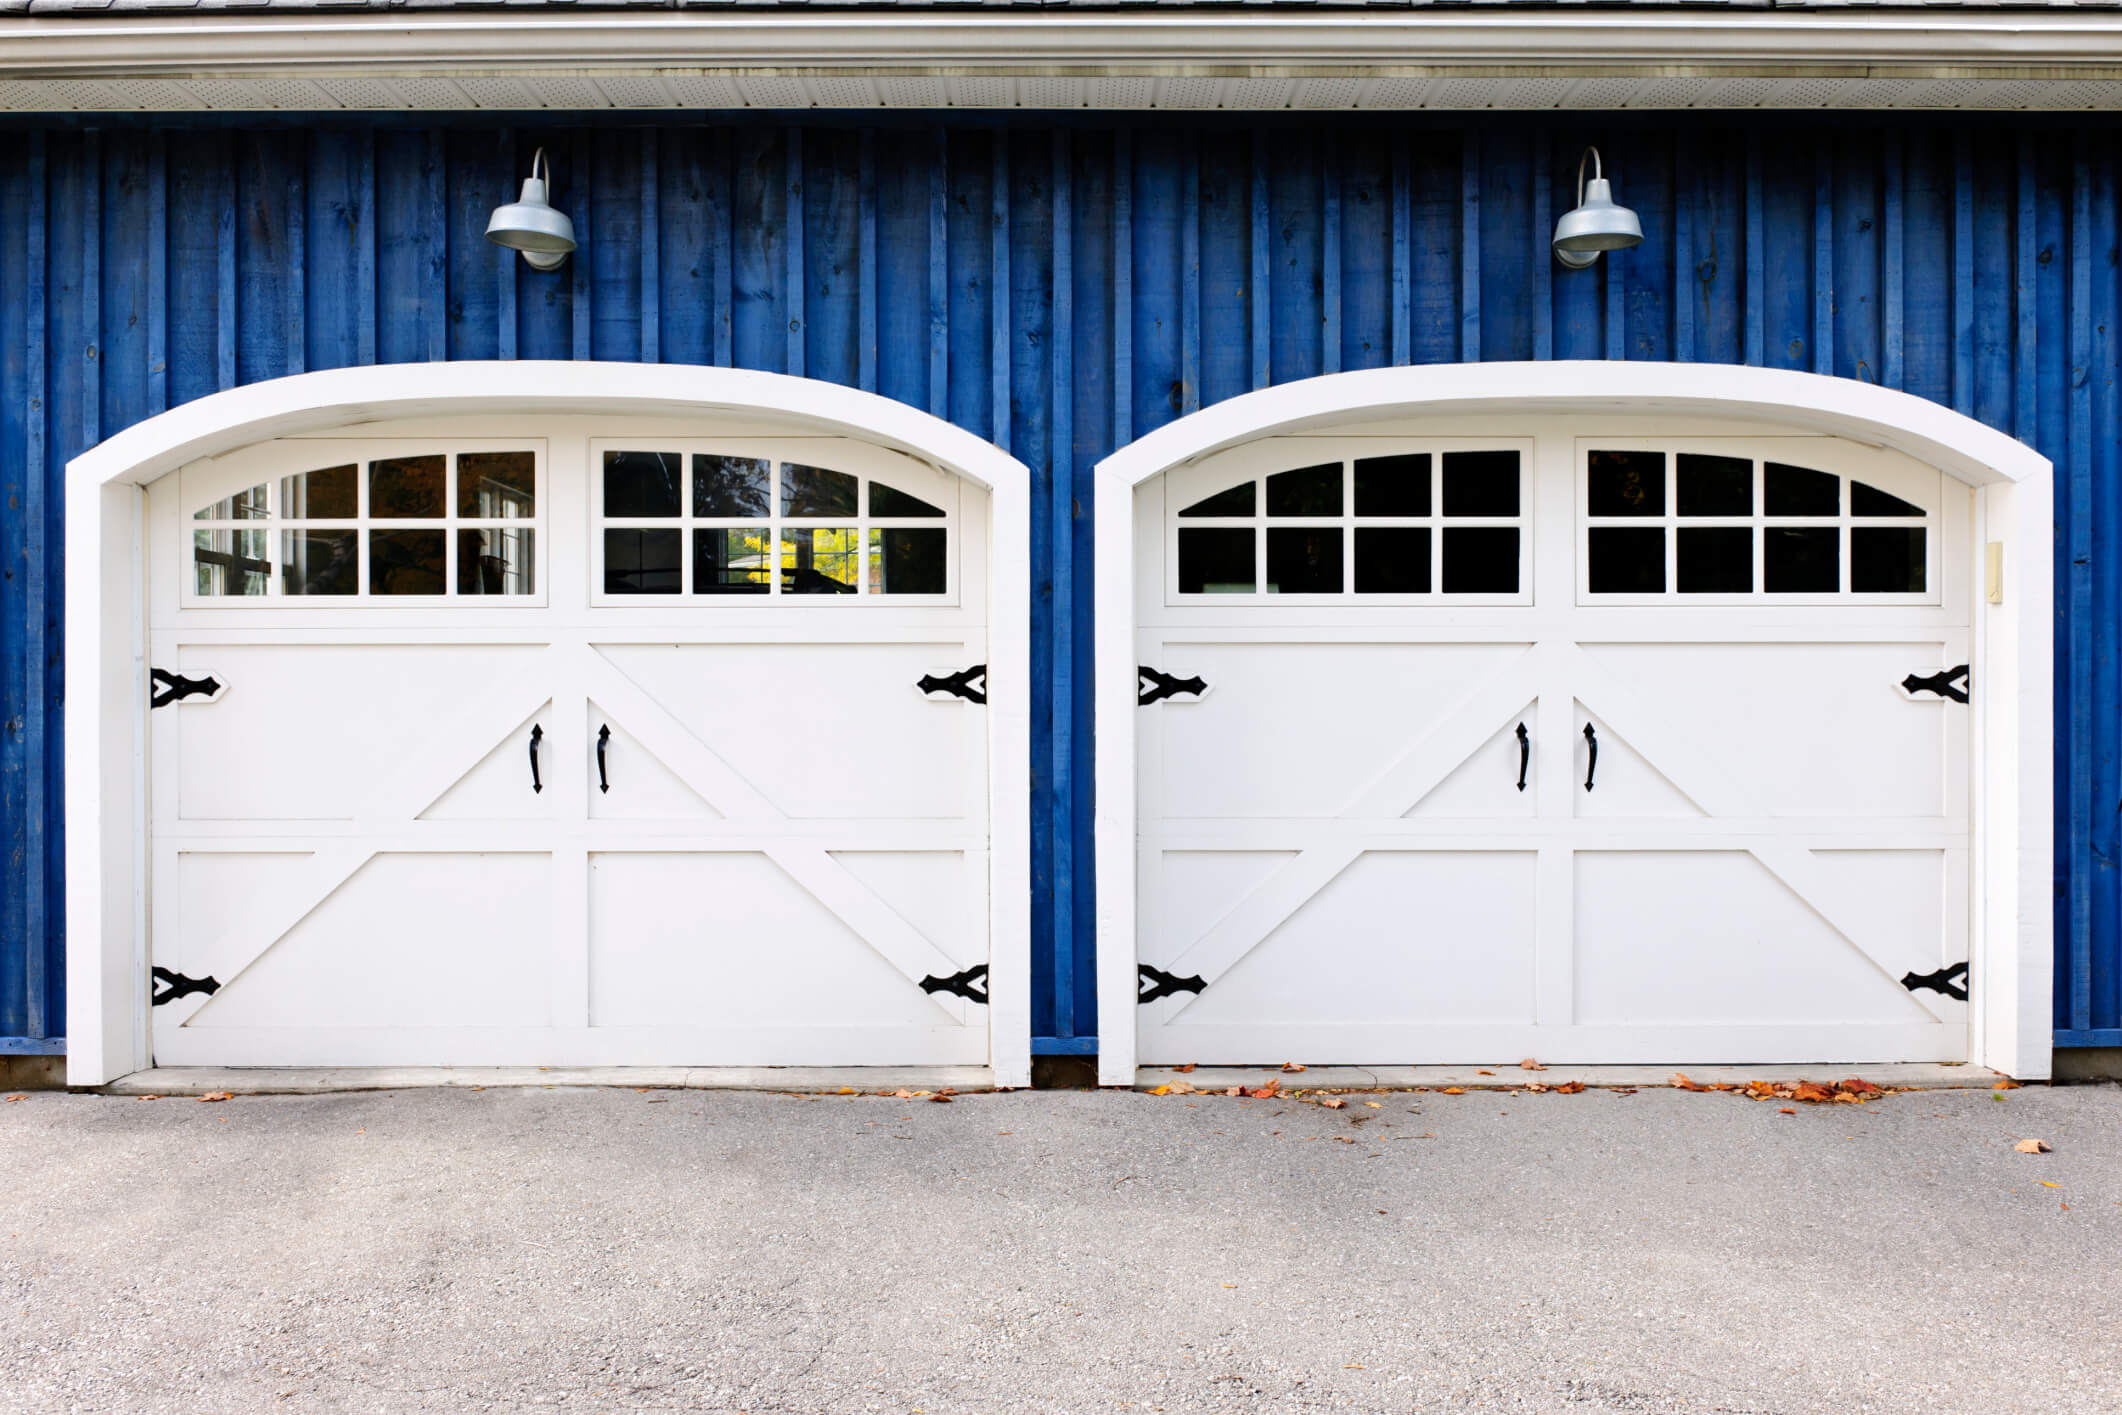 Noisy Garage Door Driving you to Become Unhinged?